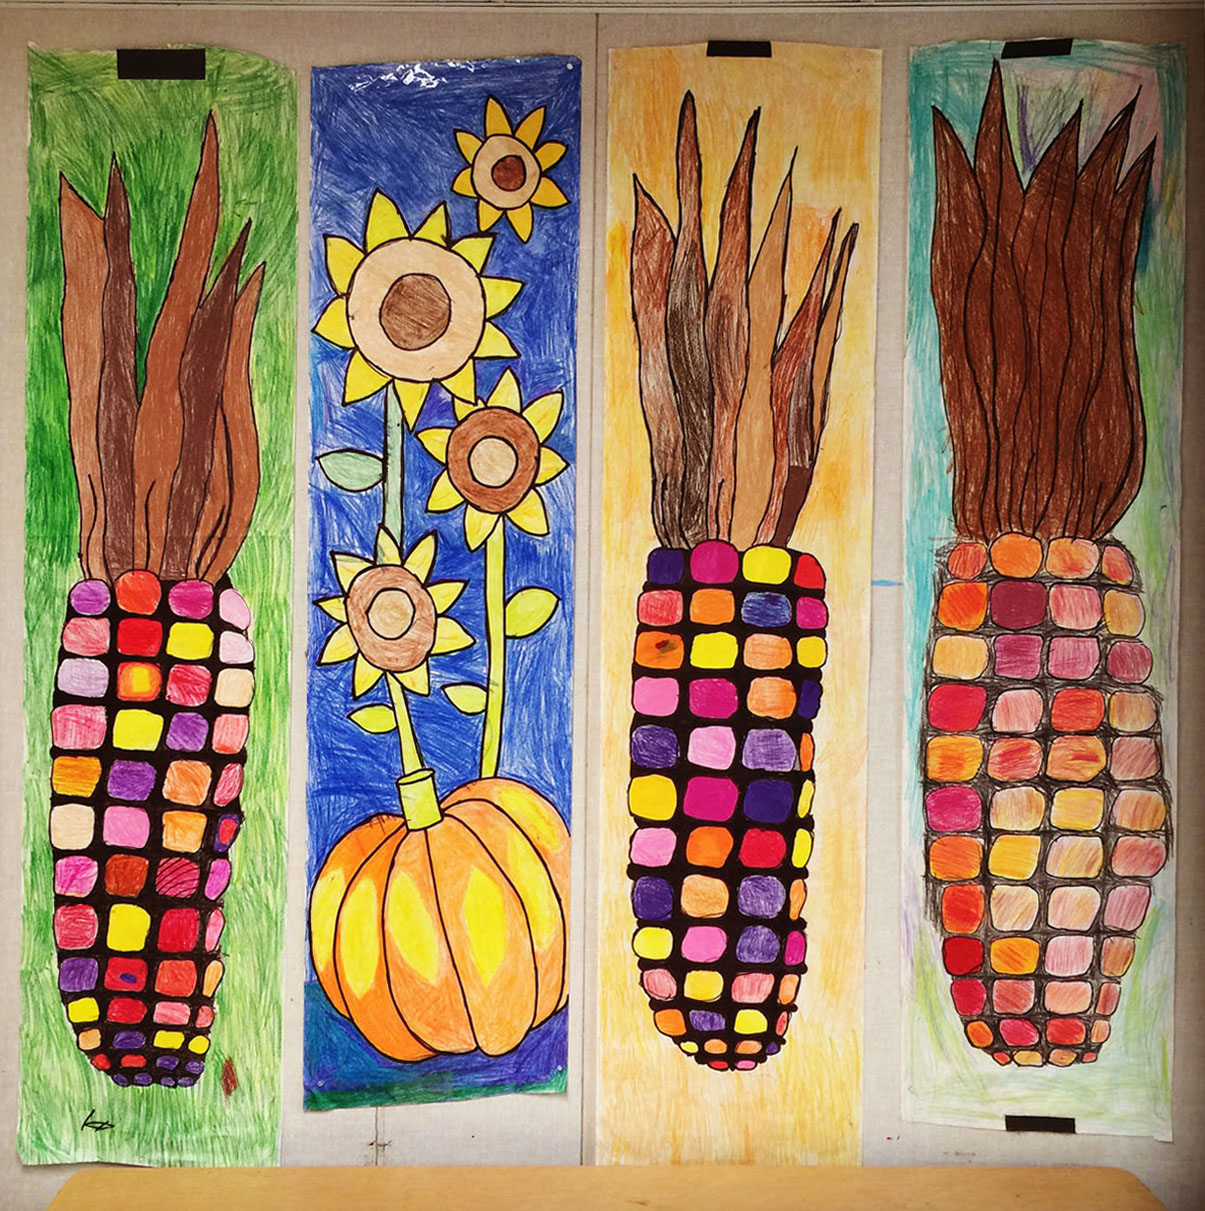 Fall festival banners art projects for kids for Arts and crafts for middle school